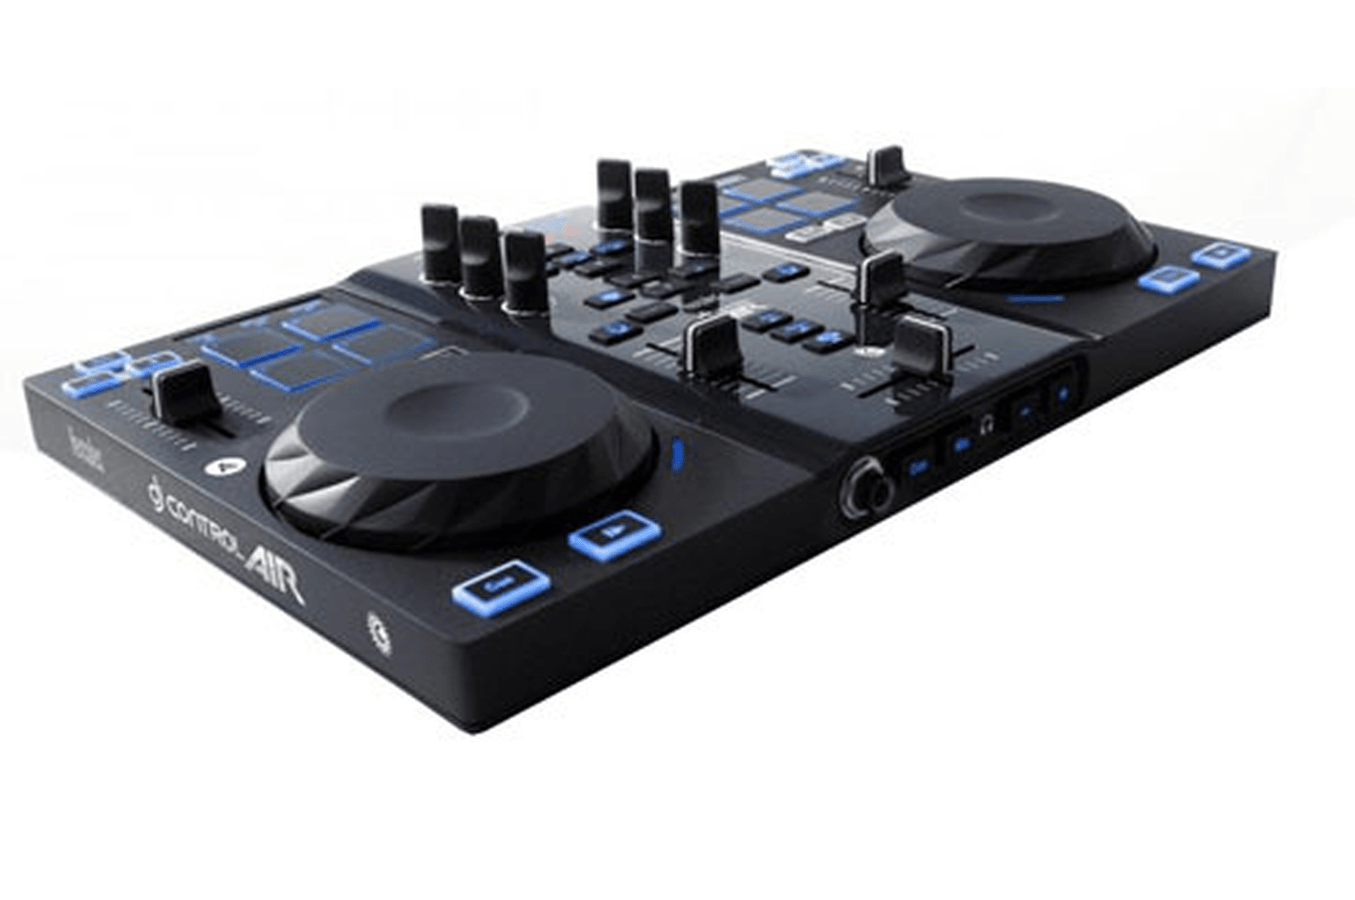 Mesa De Mezclas Amazon Table De Mixage Hercules Dj Control Air Djcontrolair